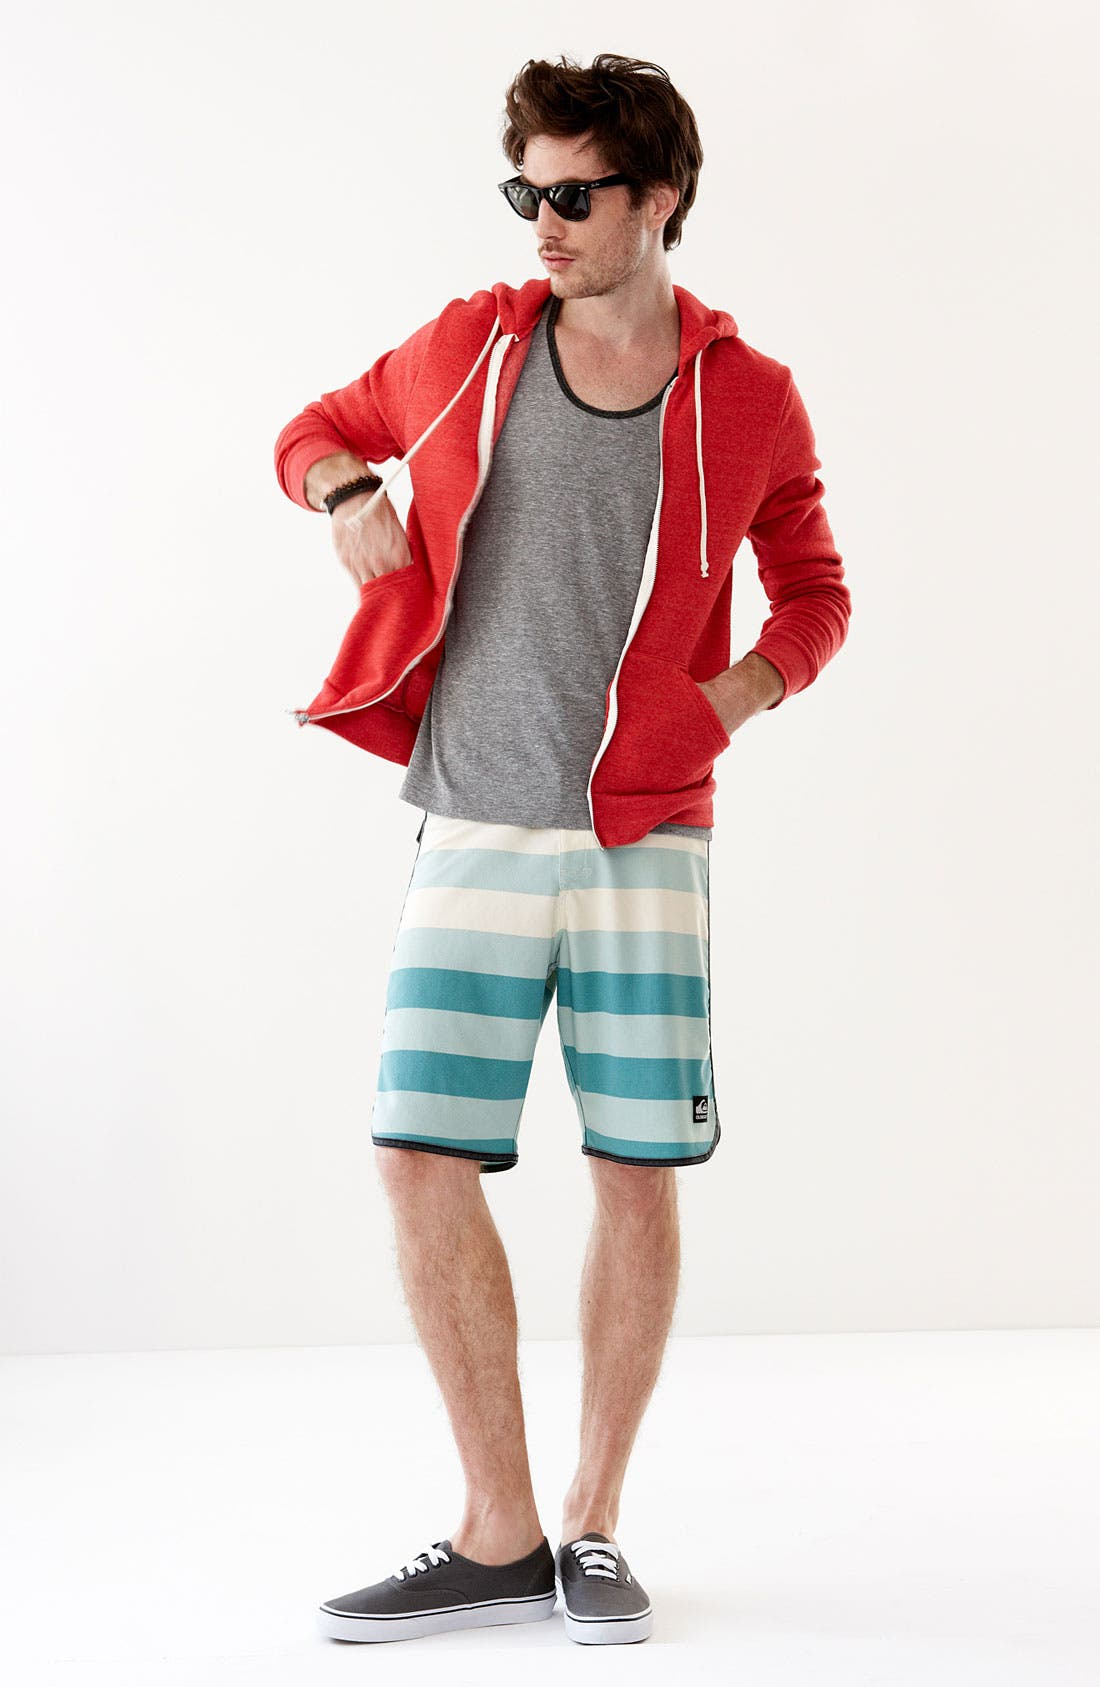 Alternate Image 1 Selected - Alternative Hoodie, The Rail by Public Opinion Tank Top & Quiksilver Board Shorts